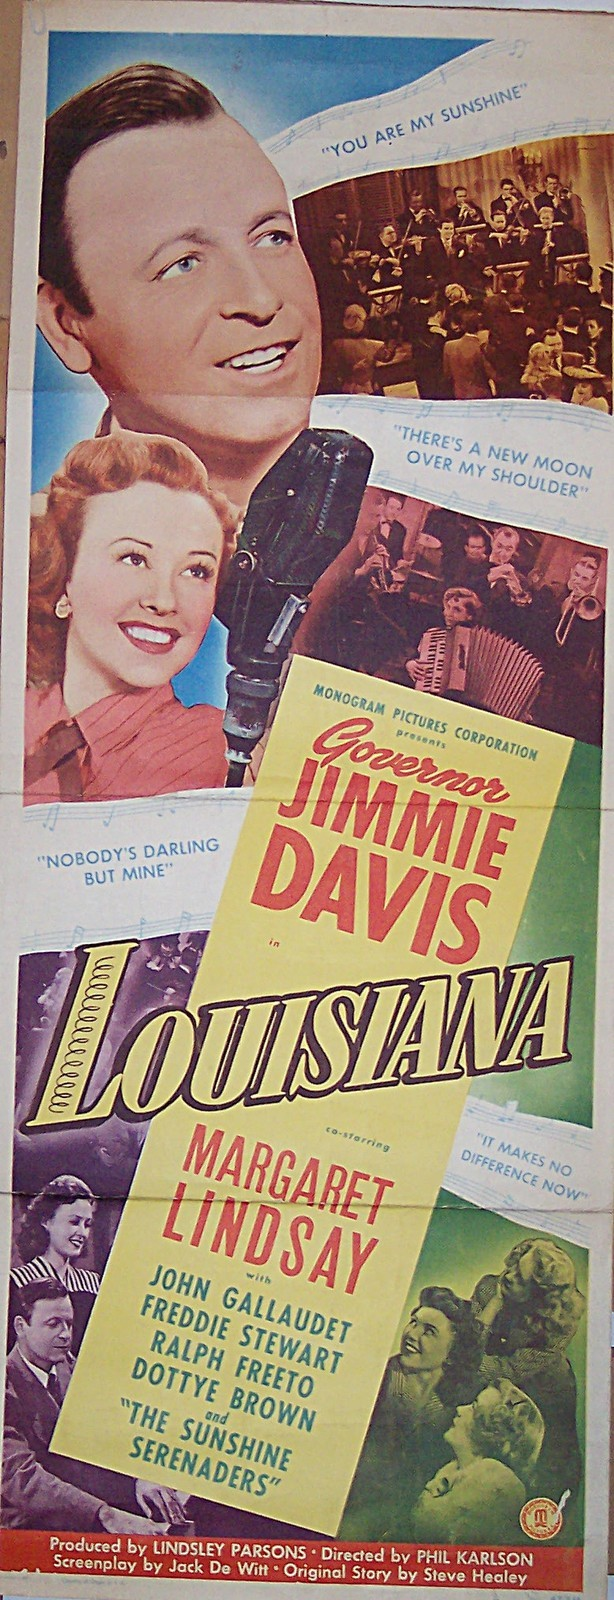 Pictured is a US insert promotional poster for the 1947 Phil Karlson film Louisiana starring Jimmie Davis.